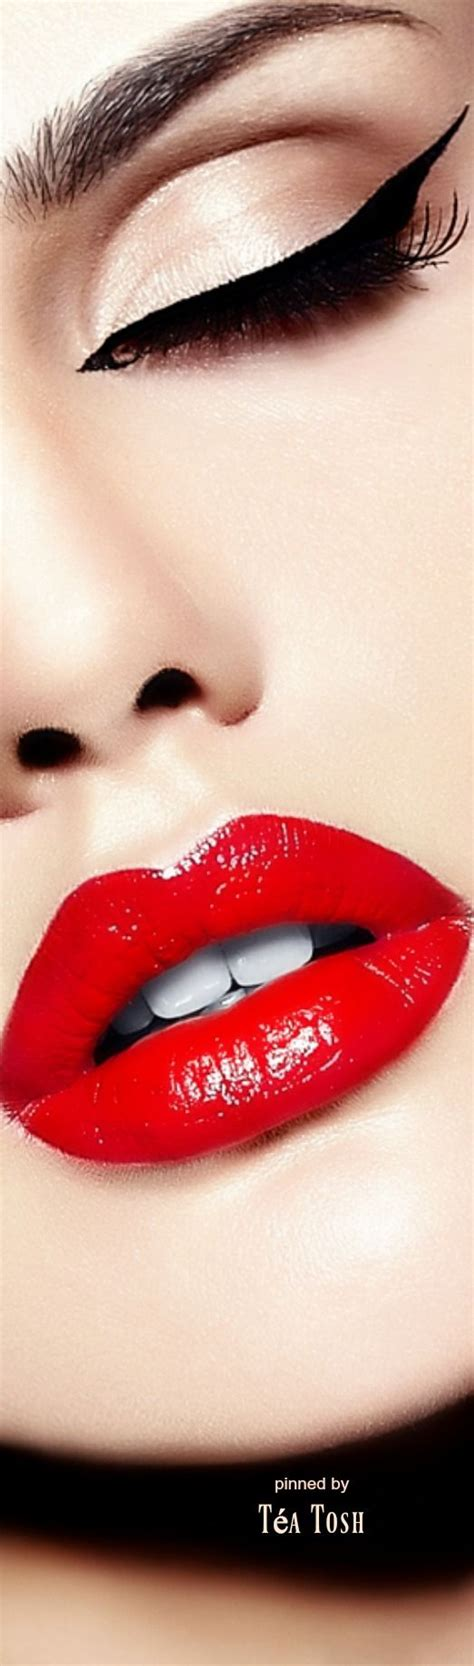 sexsy lips picture 2